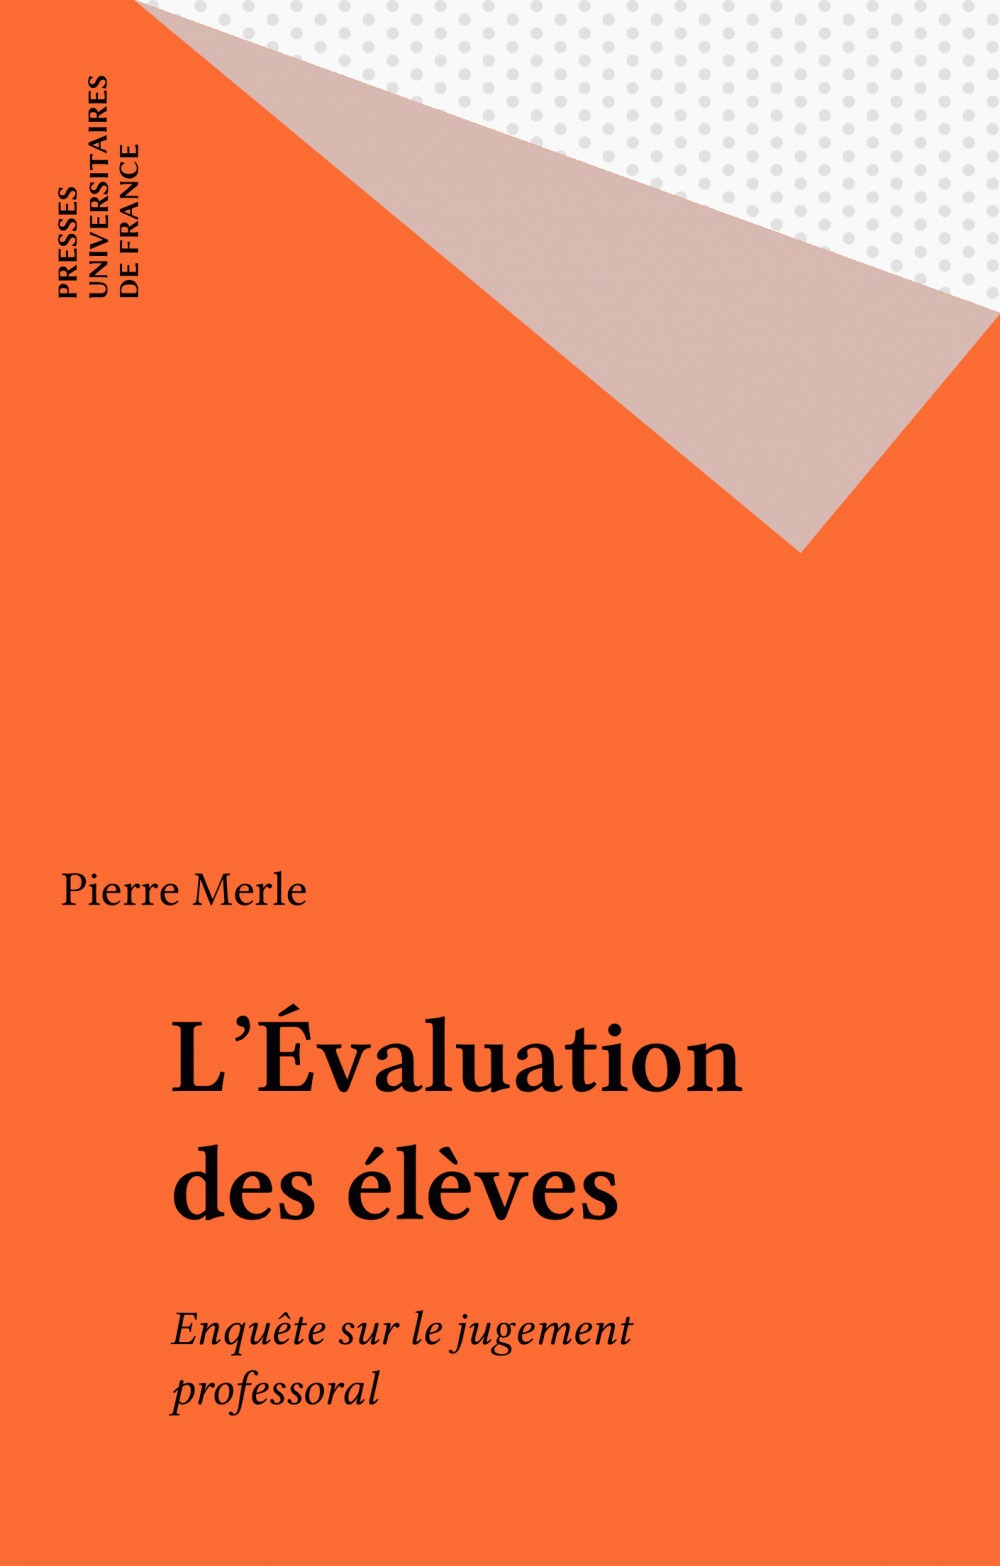 L'evaluation des eleves